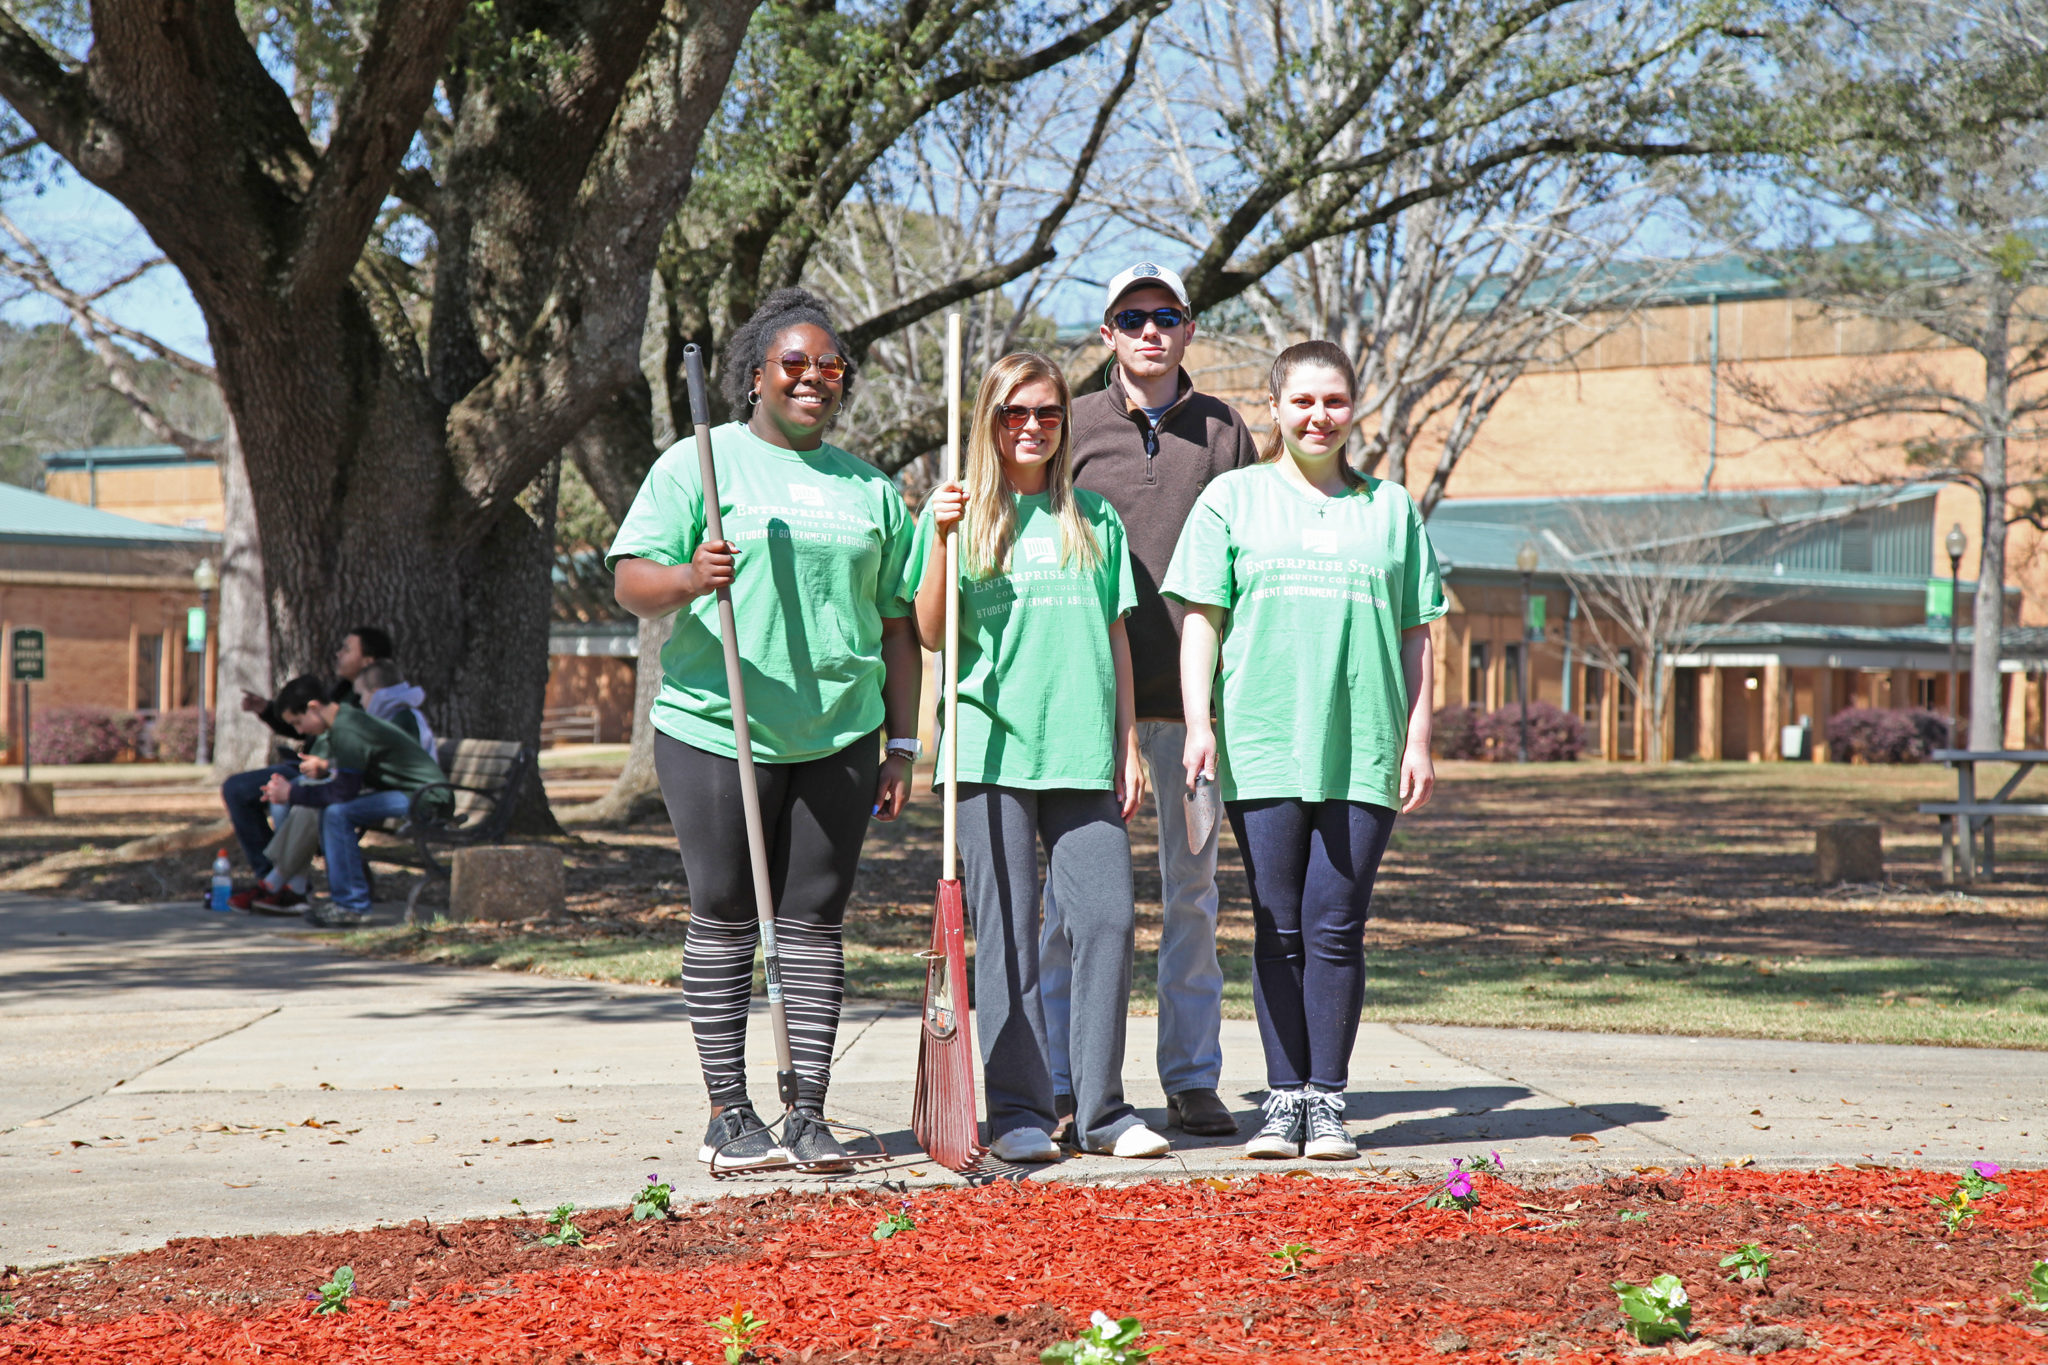 ESCC's Student Government Association use proceeds from fall event into beautification project